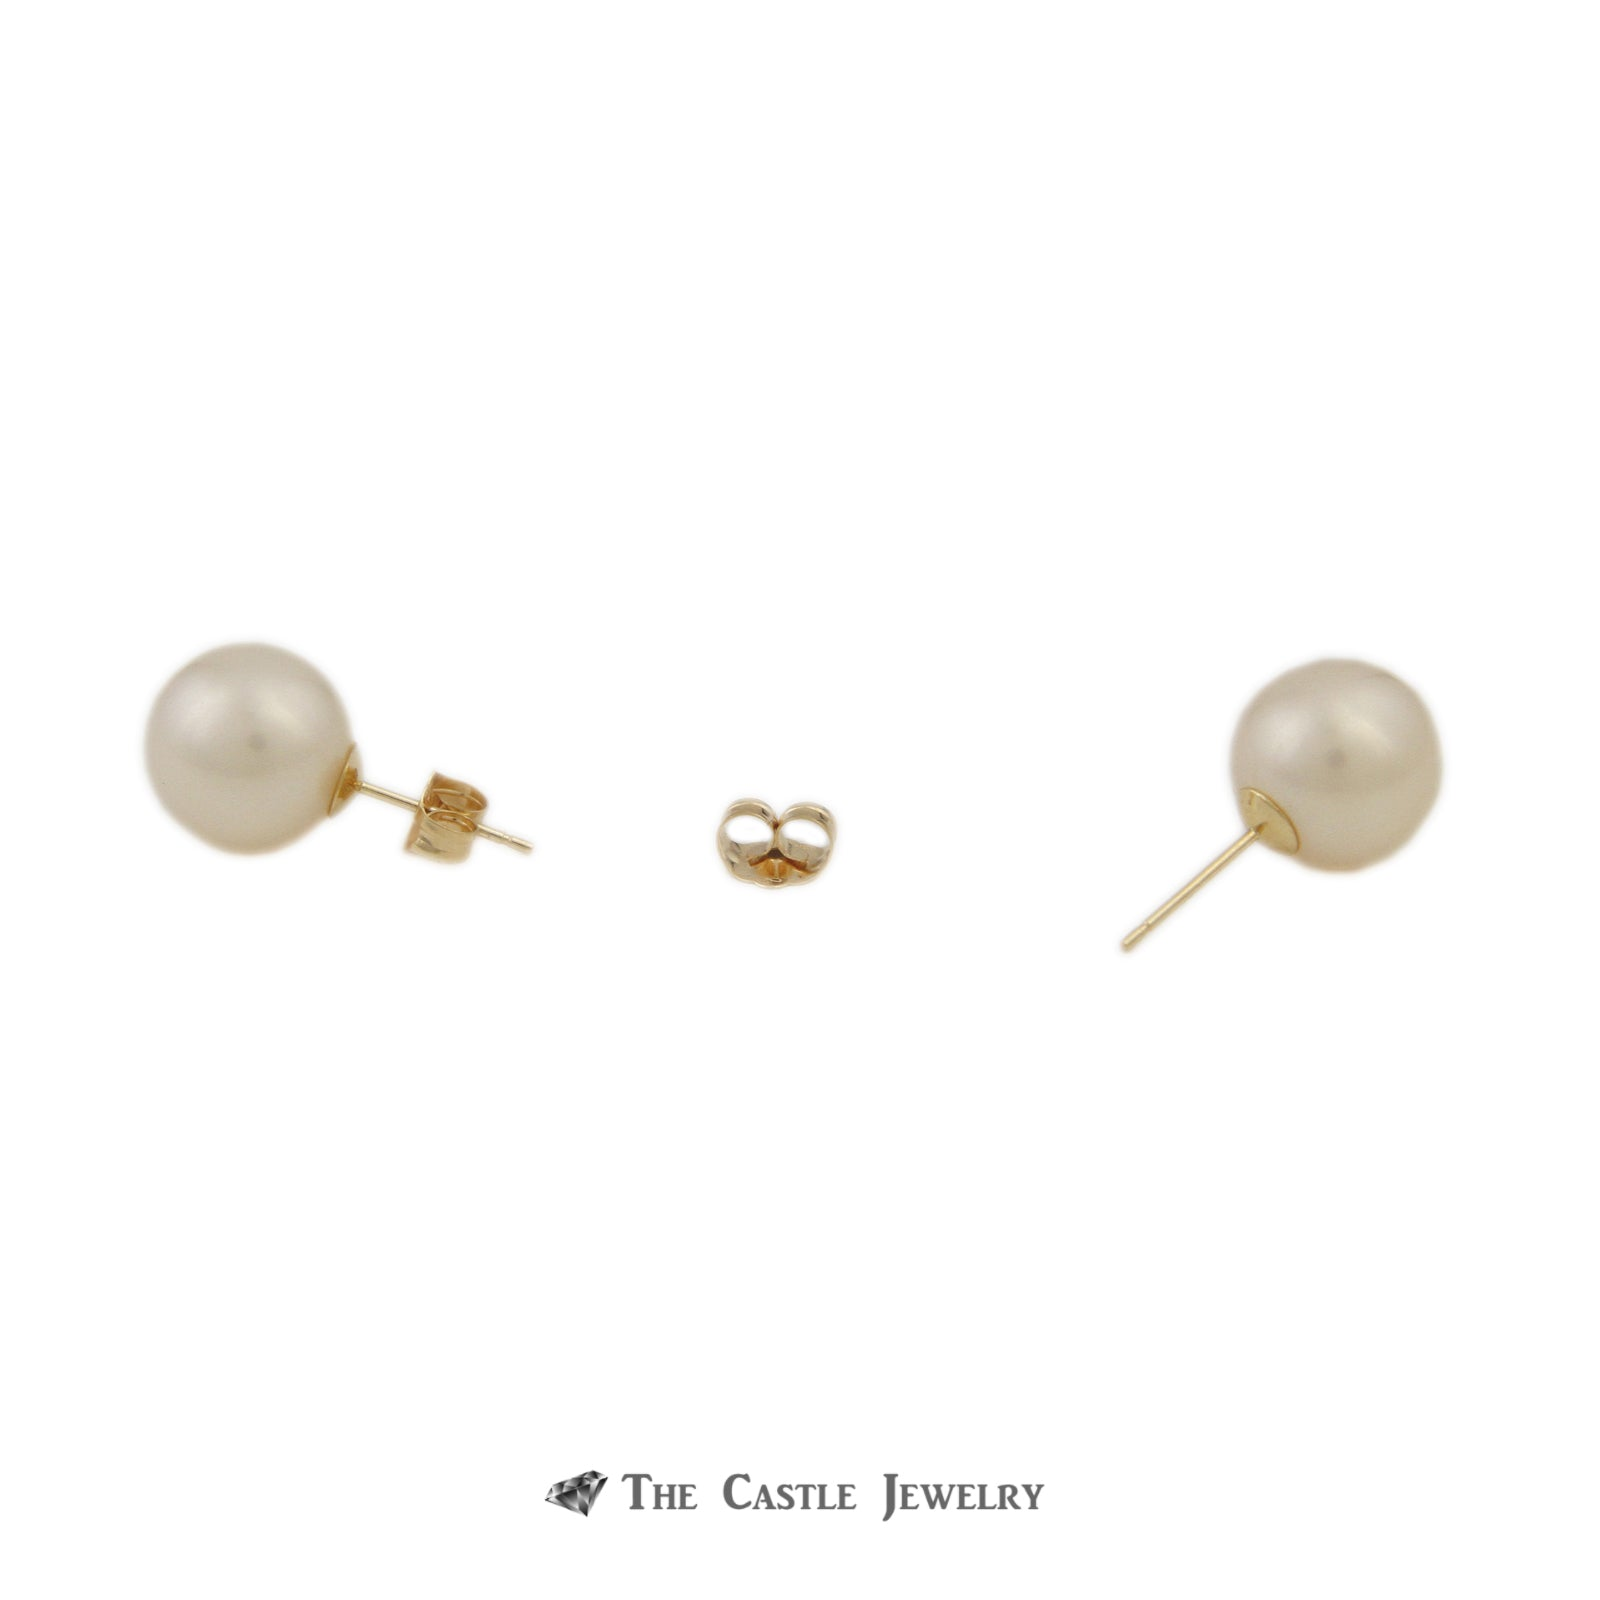 Pearl Earrings with 10-11mm Pearls in 14K Yellow Gold-1